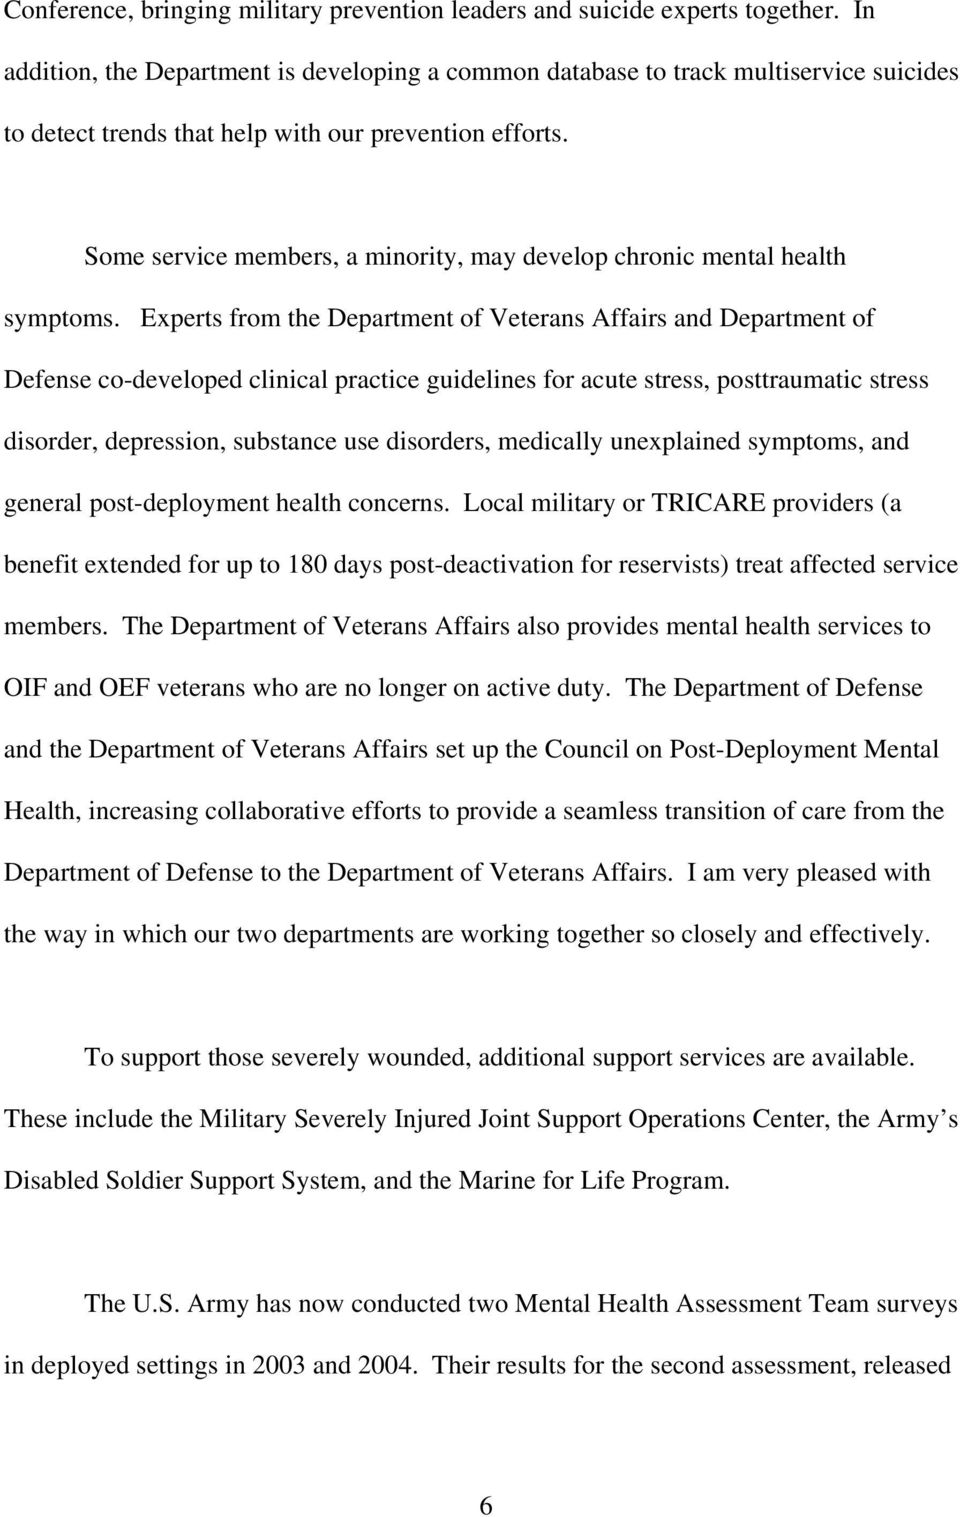 Some service members, a minority, may develop chronic mental health symptoms.